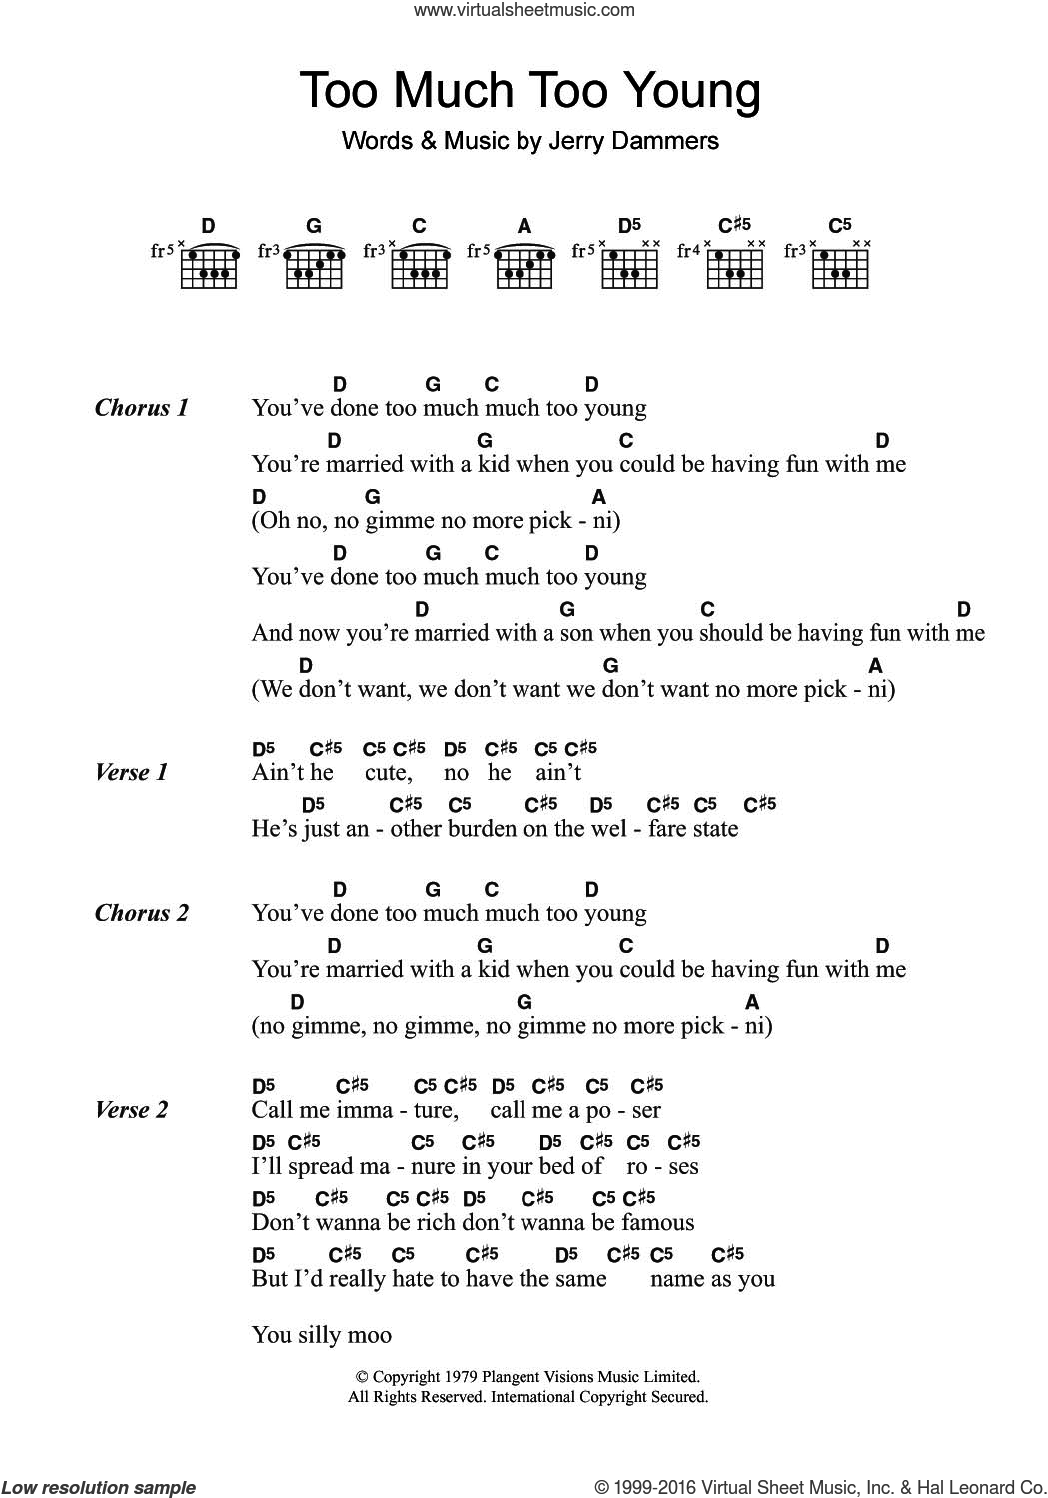 Too Much Too Young sheet music for guitar (chords) by The Specials and Jerry Dammers, intermediate skill level